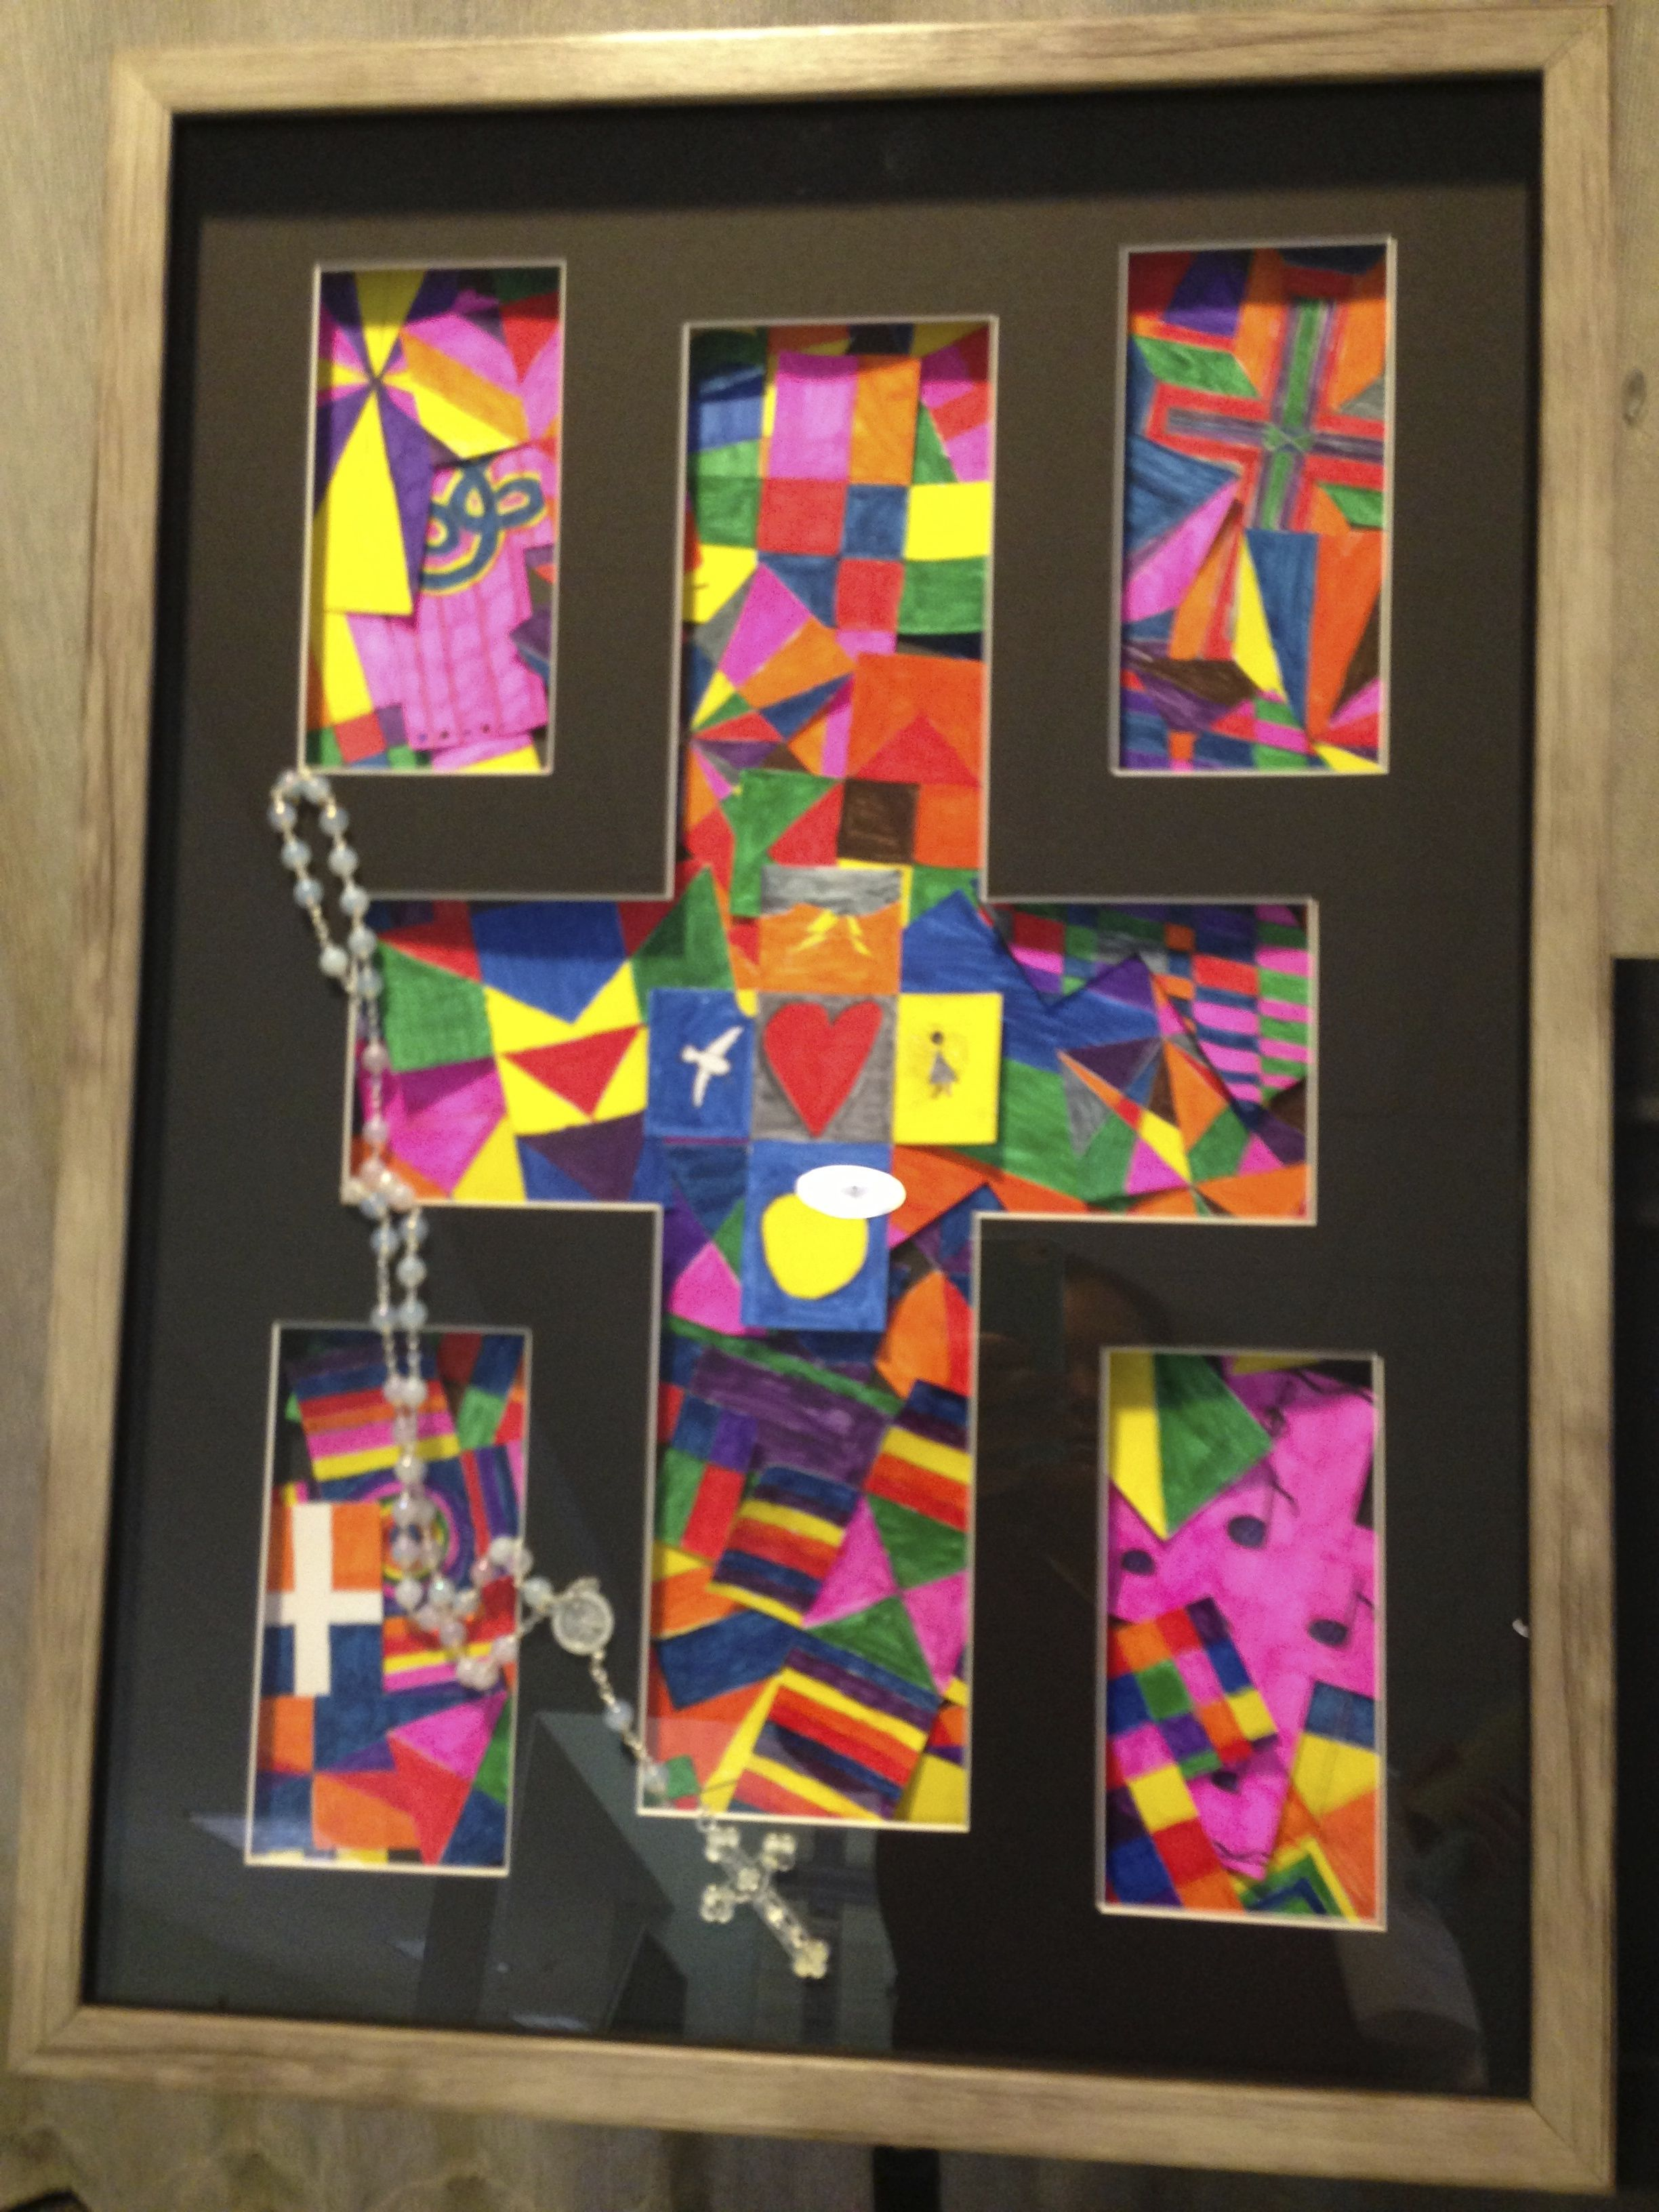 6th Grade Art Project For Our Annual Silent Auction